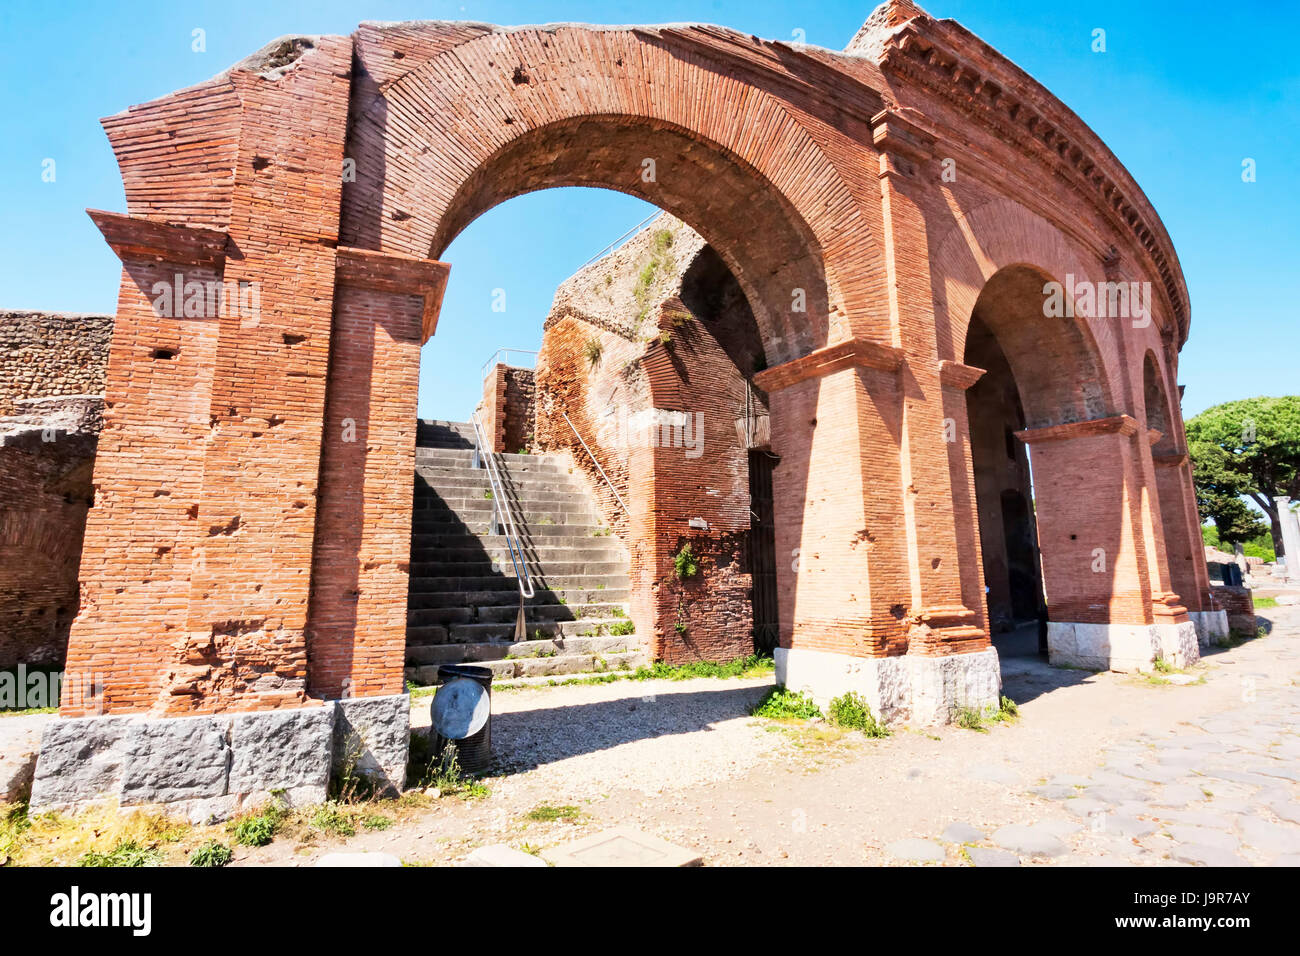 Archaeological Roman site landscape in Ostia Antica - Rome - Italy Stock Photo